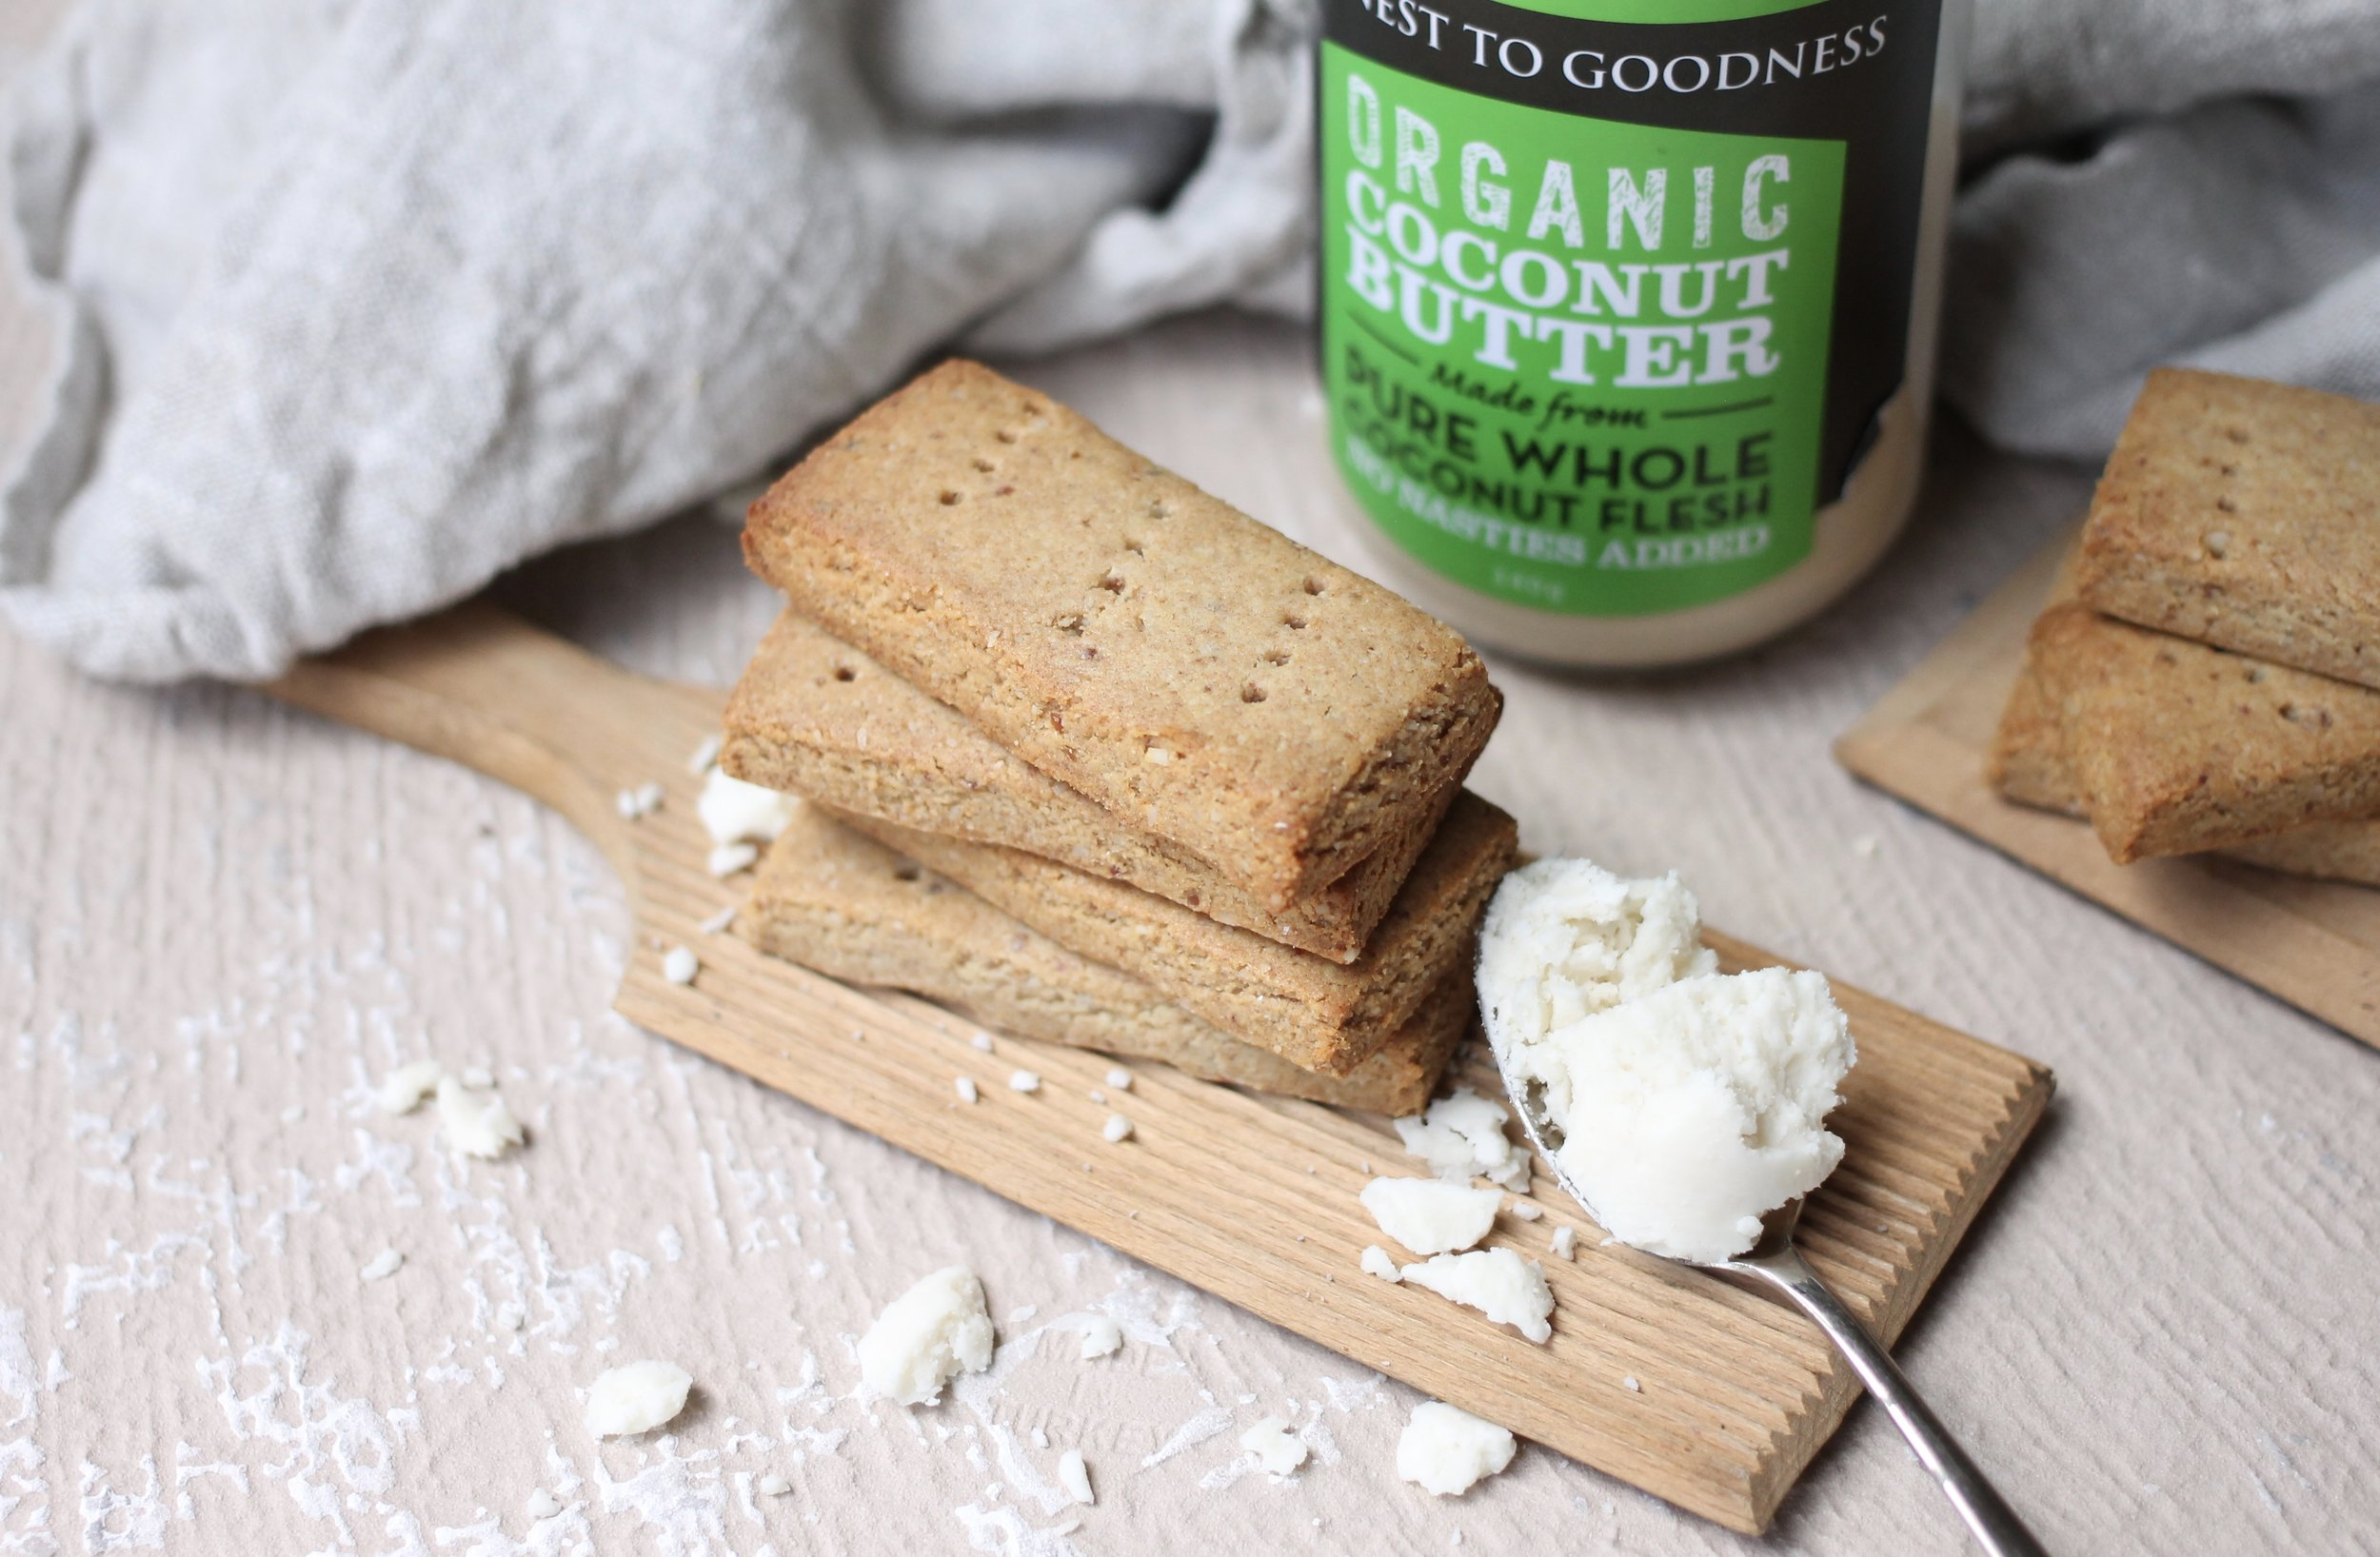 Honest To Goodness Organic Coconut Butter